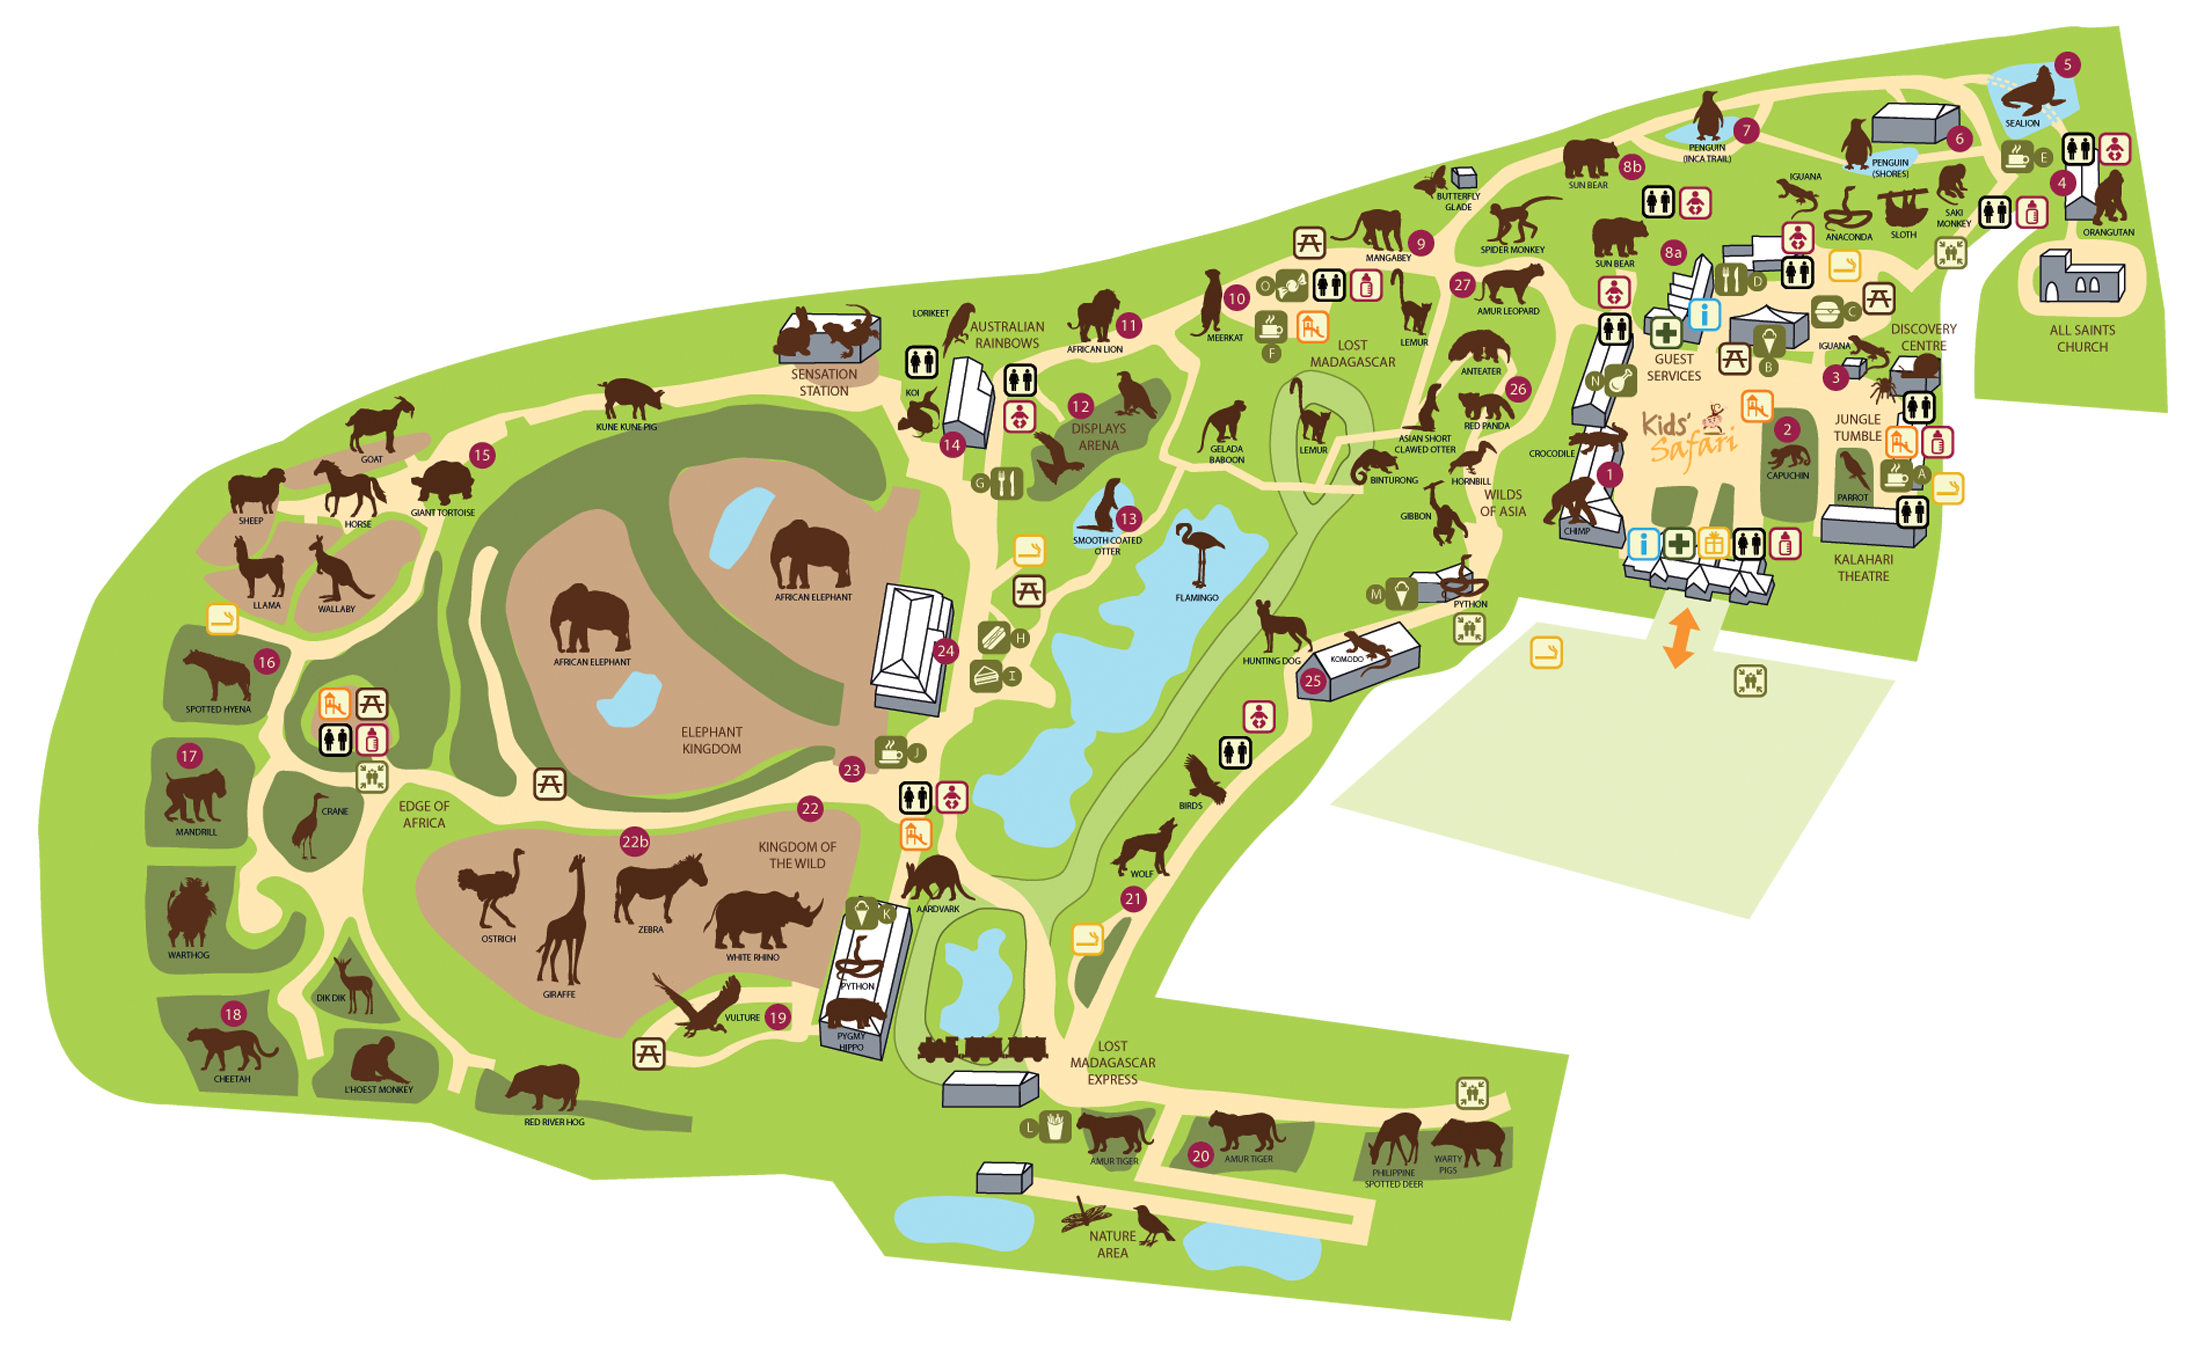 Zoo Map Colchester Zoo Places To Go Pinterest Colchester - Houston zoo map